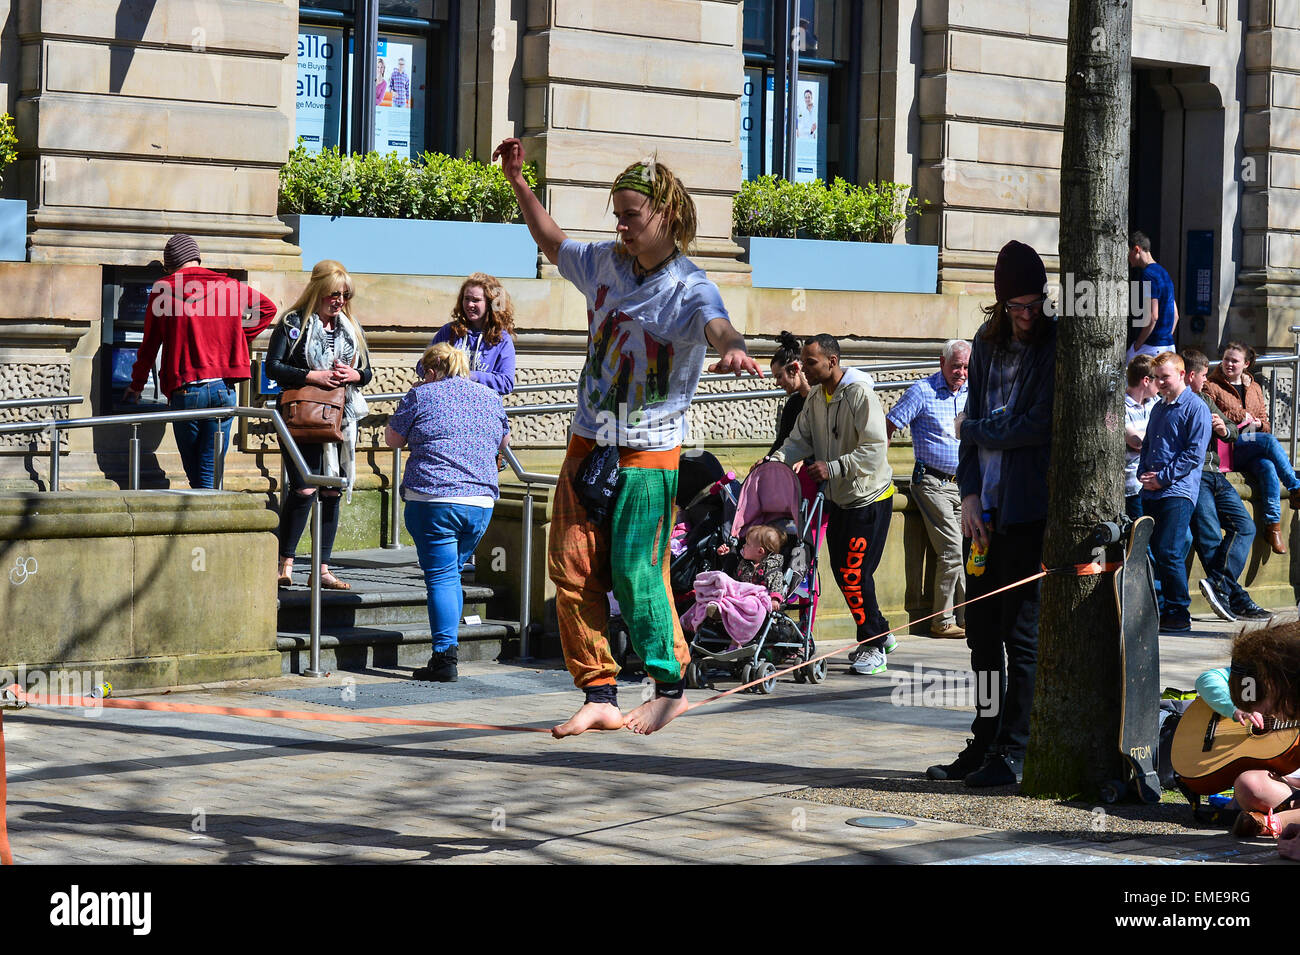 Young street entertainer performs tightrope act in Guildhall Square, Londonderry (Derry), Northern Ireland - Stock Image